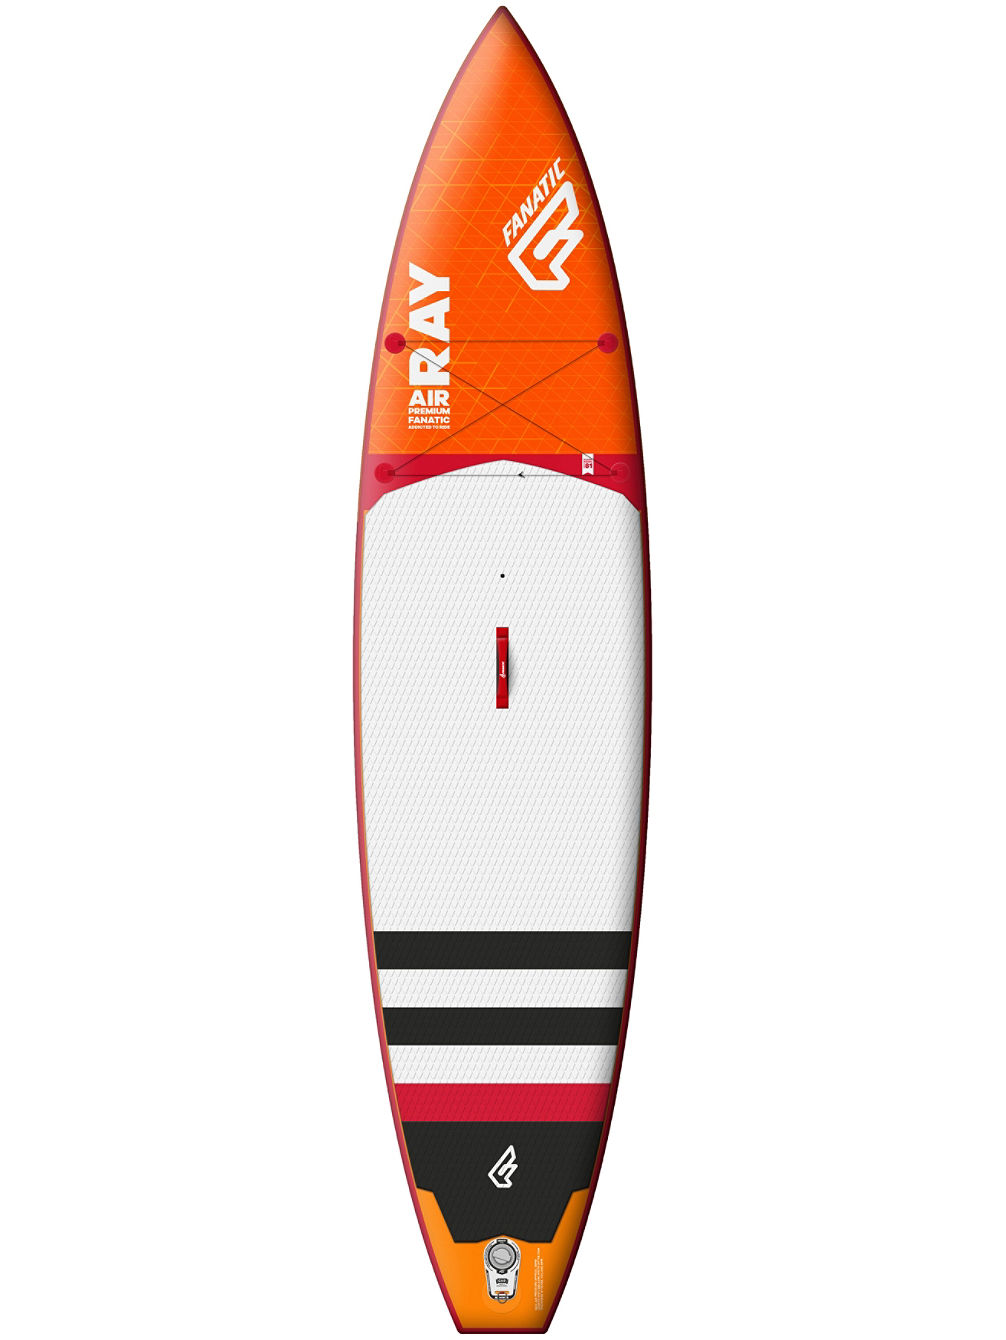 Ray Air Premium 11.6x31 SUP Board